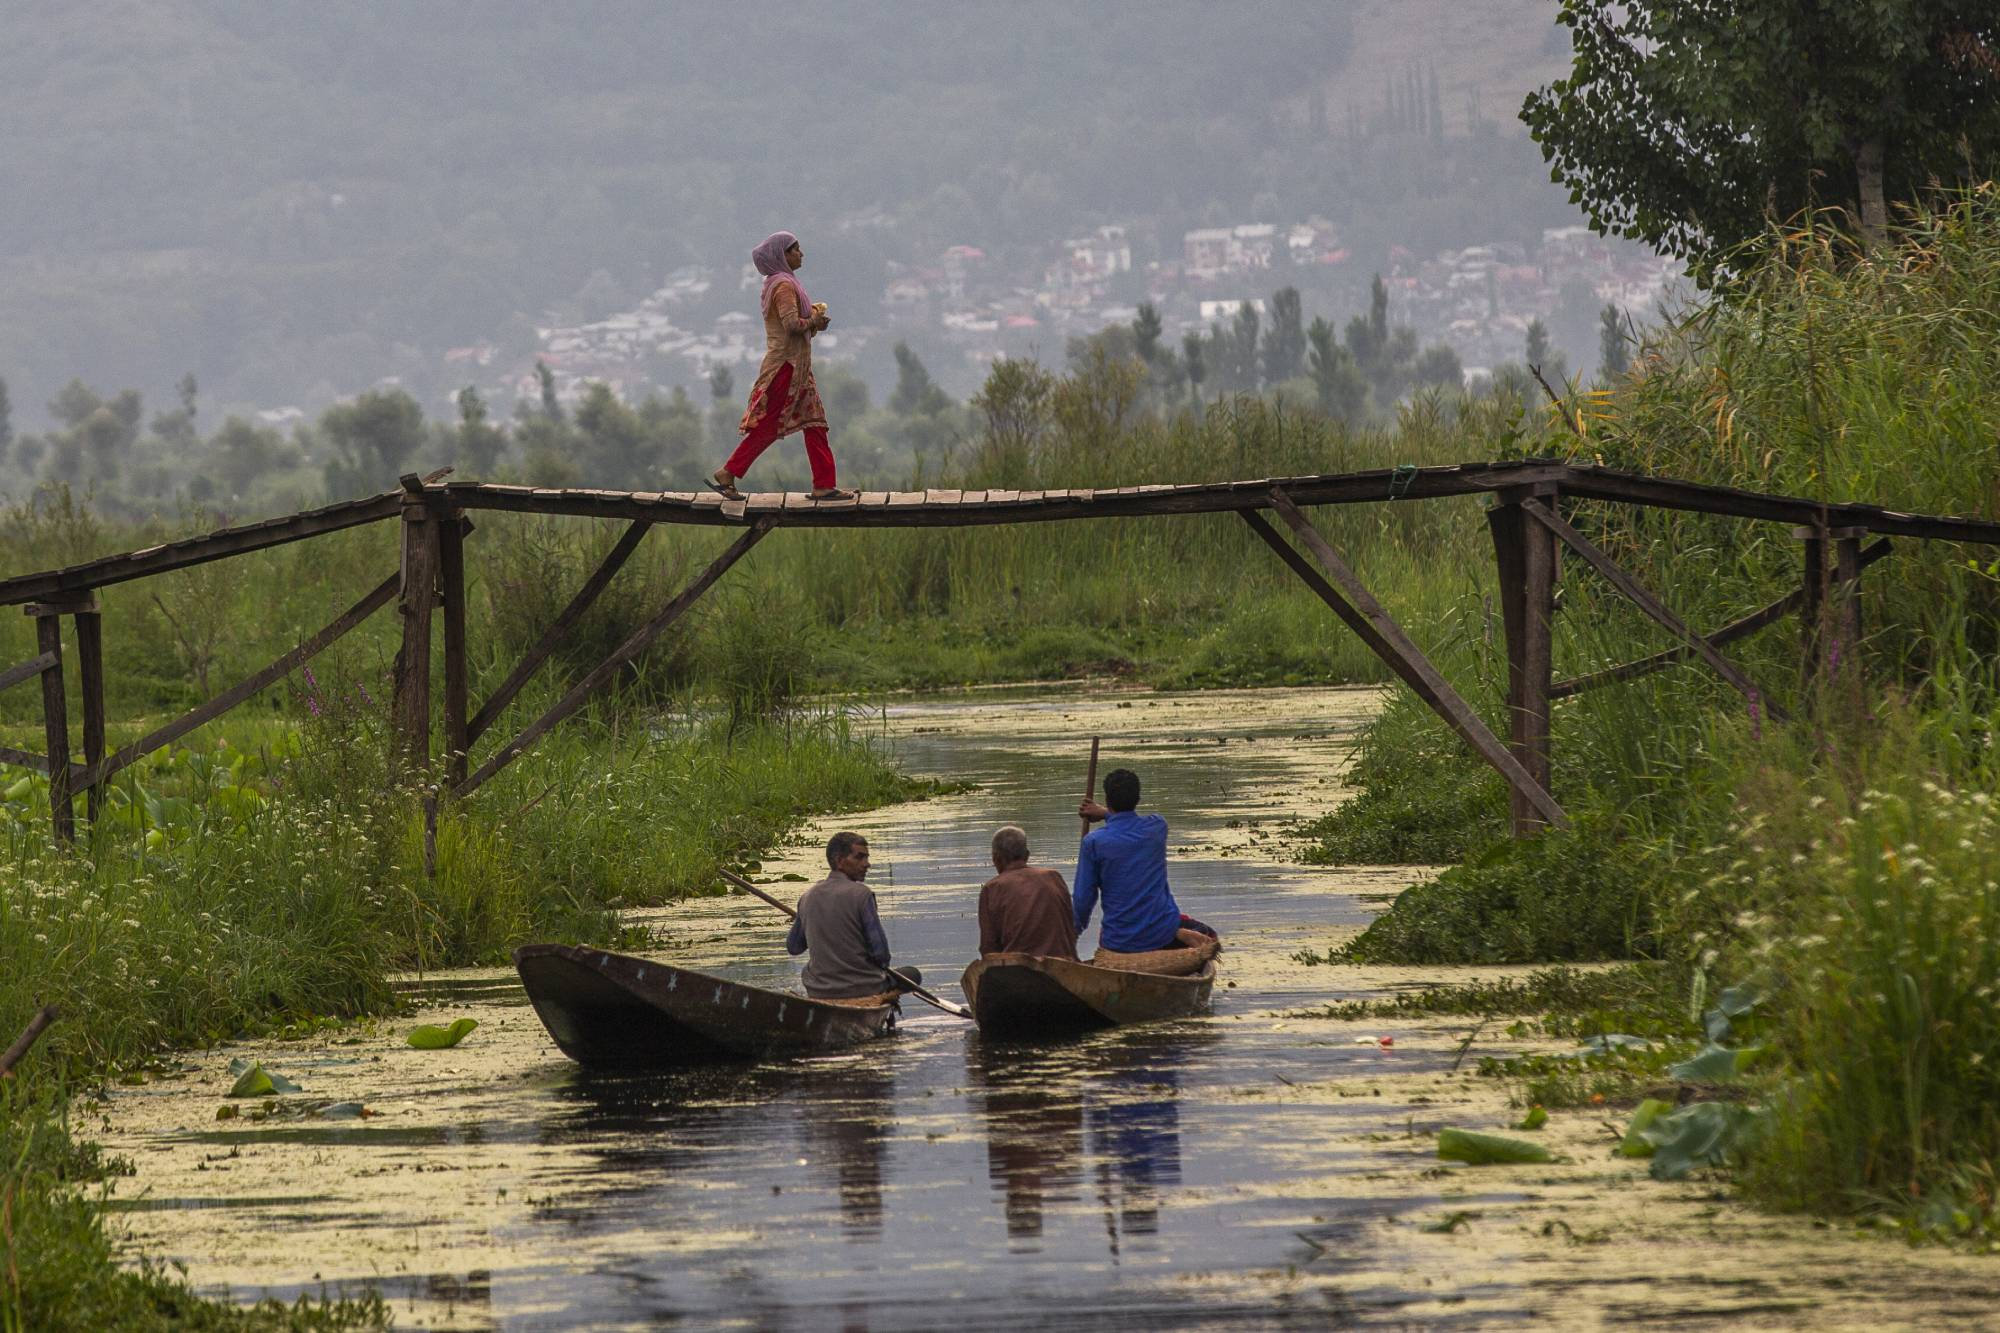 A Kashmiri woman walks back home after buying bread as men row their boat after selling their vegetables at the floating vegetable market on the Dal Lake in Srinagar, India. | AP